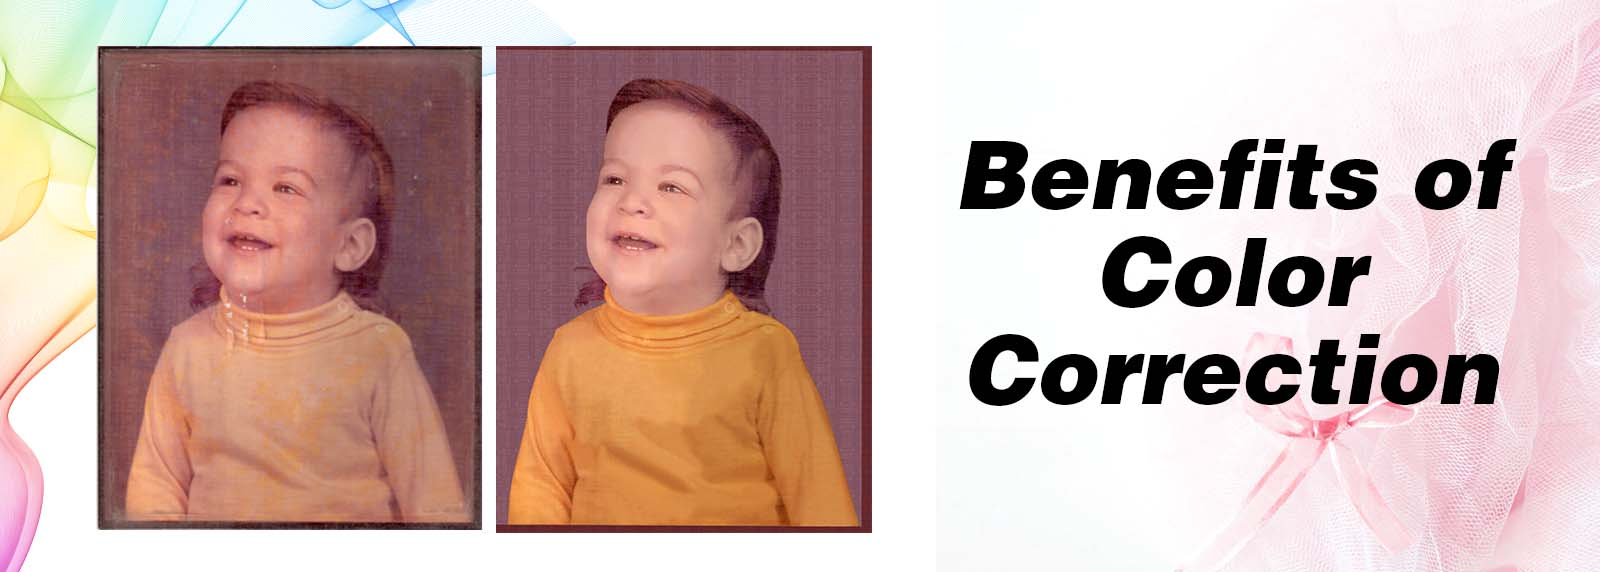 benefits-of-color-correction